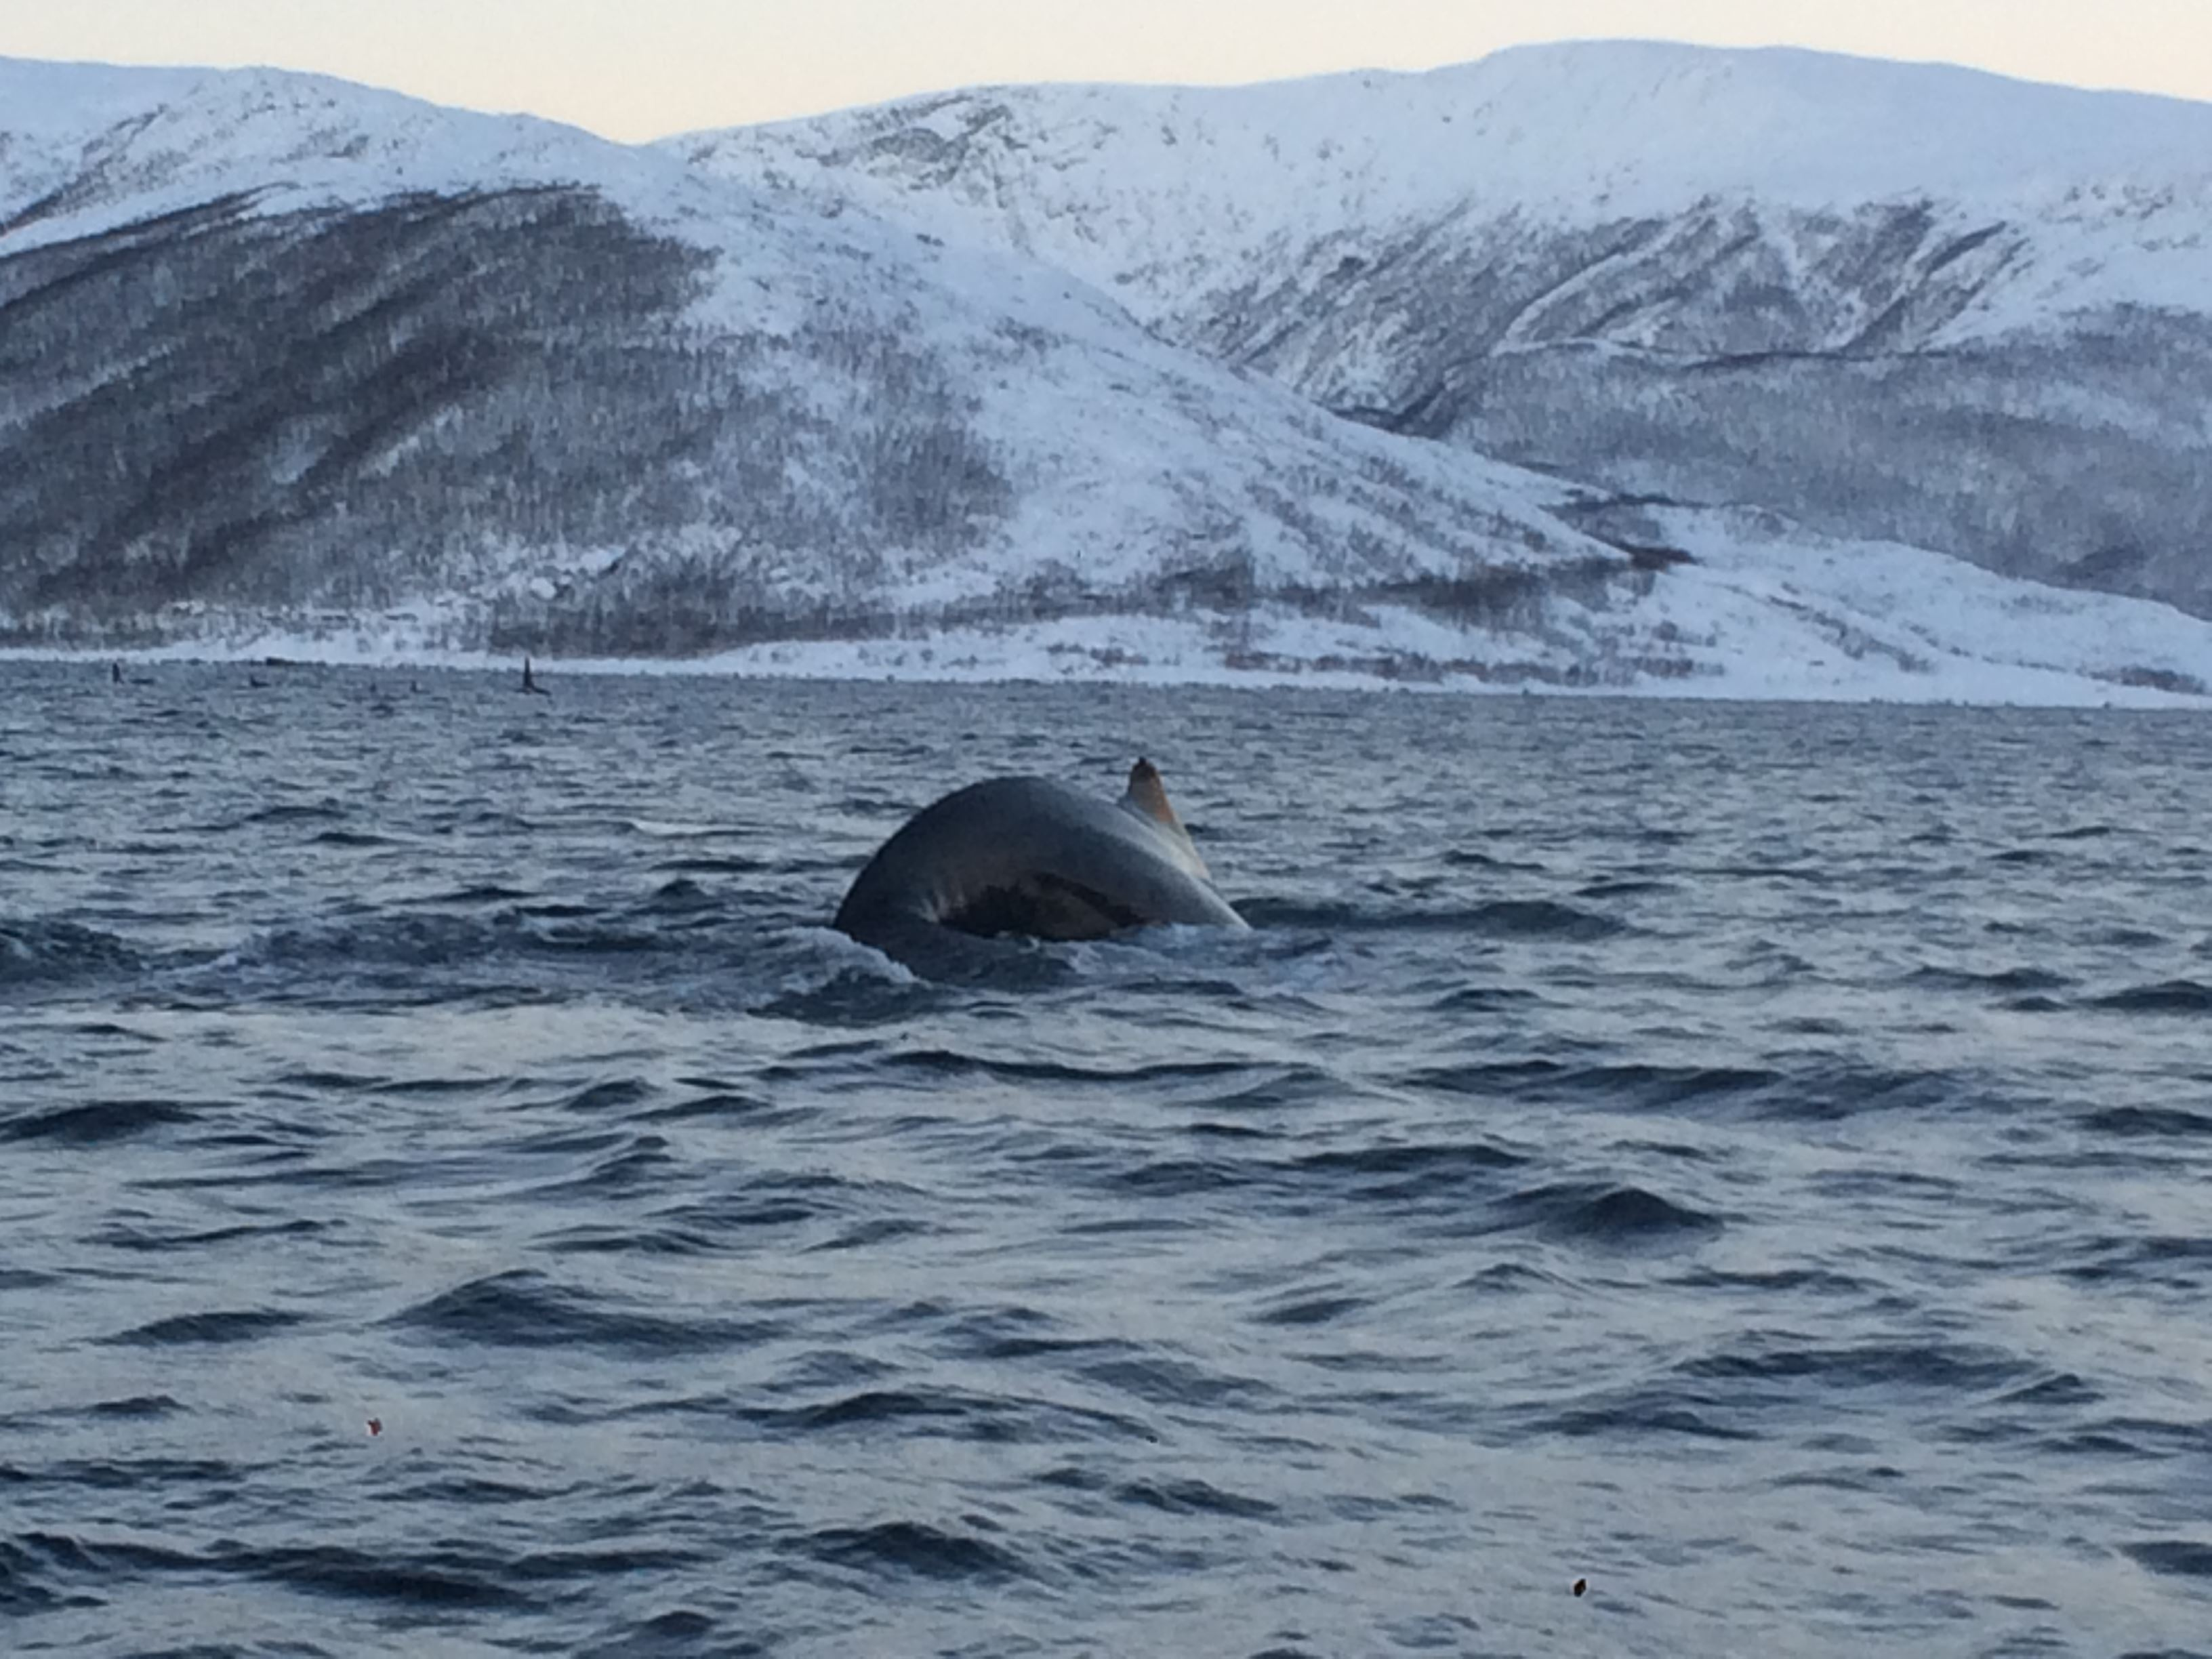 Whale and nature safari - with transfer from Honningsvåg if required